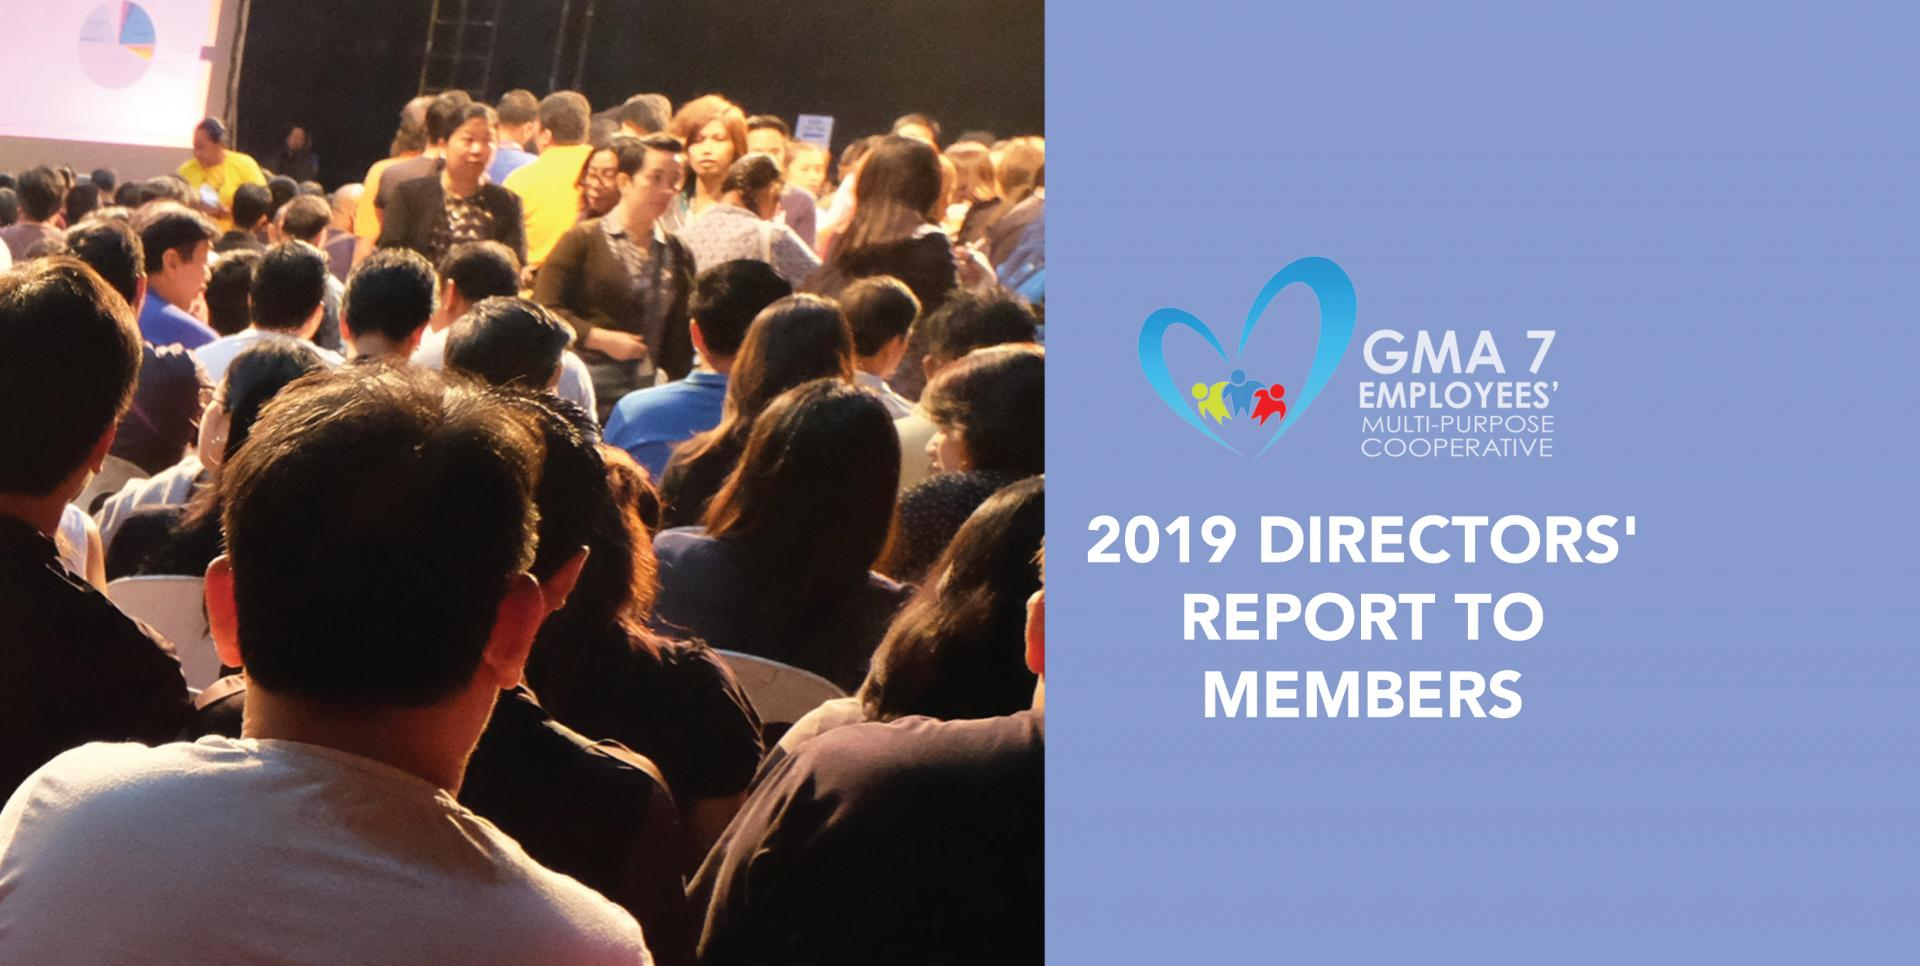 http://gma7empc.coop/about-us/16/gempc-acbl-and-policies/2019-directors-report-to-members